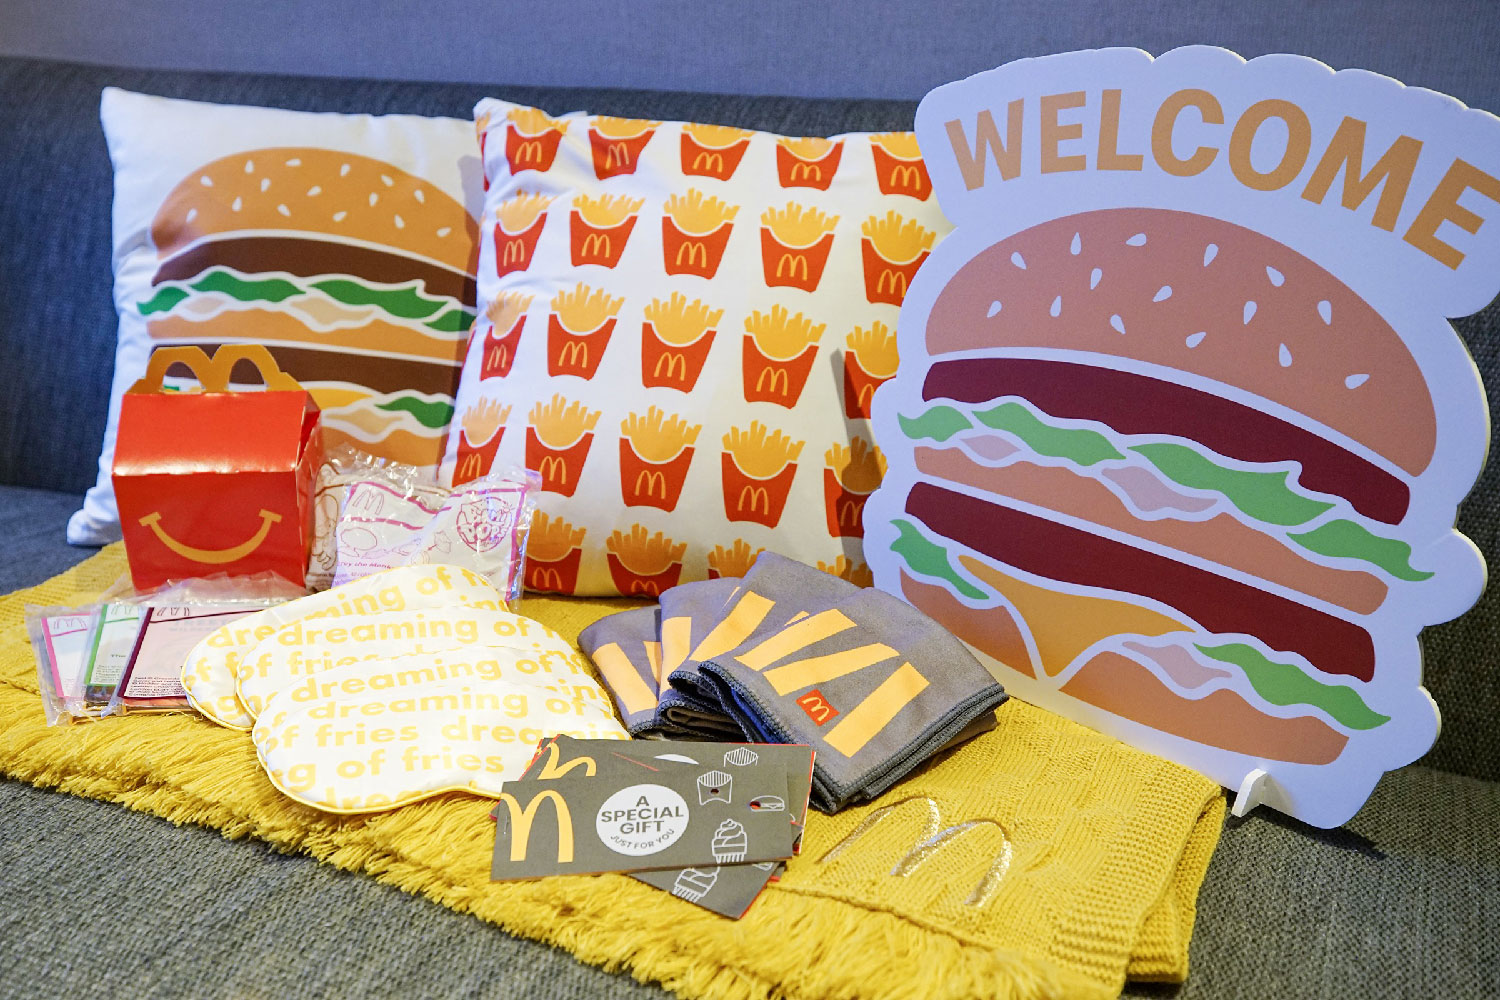 McDelivery®-x-Klook-'Happiest-Night-In'-Staycation-Merchandise-4-(Credit--Klook-Singapore)